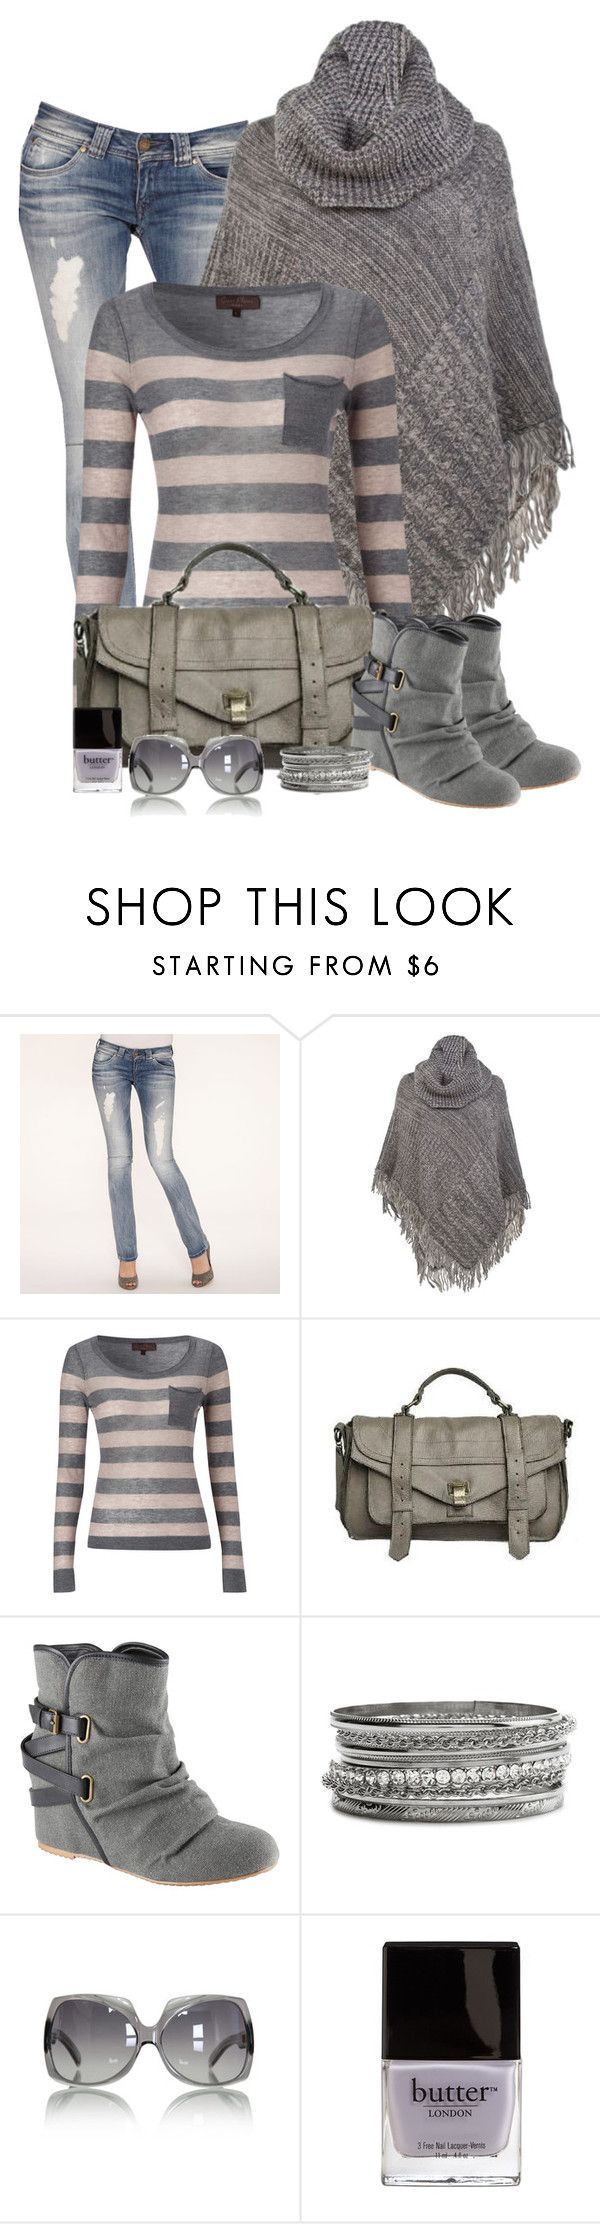 """""""167"""" by serepunky ❤ liked on Polyvore featuring Pepe Jeans London, Ann Harvey, Great Plains, Retrò, ALDO, Charlotte Russe, Belstaff and Butter London"""